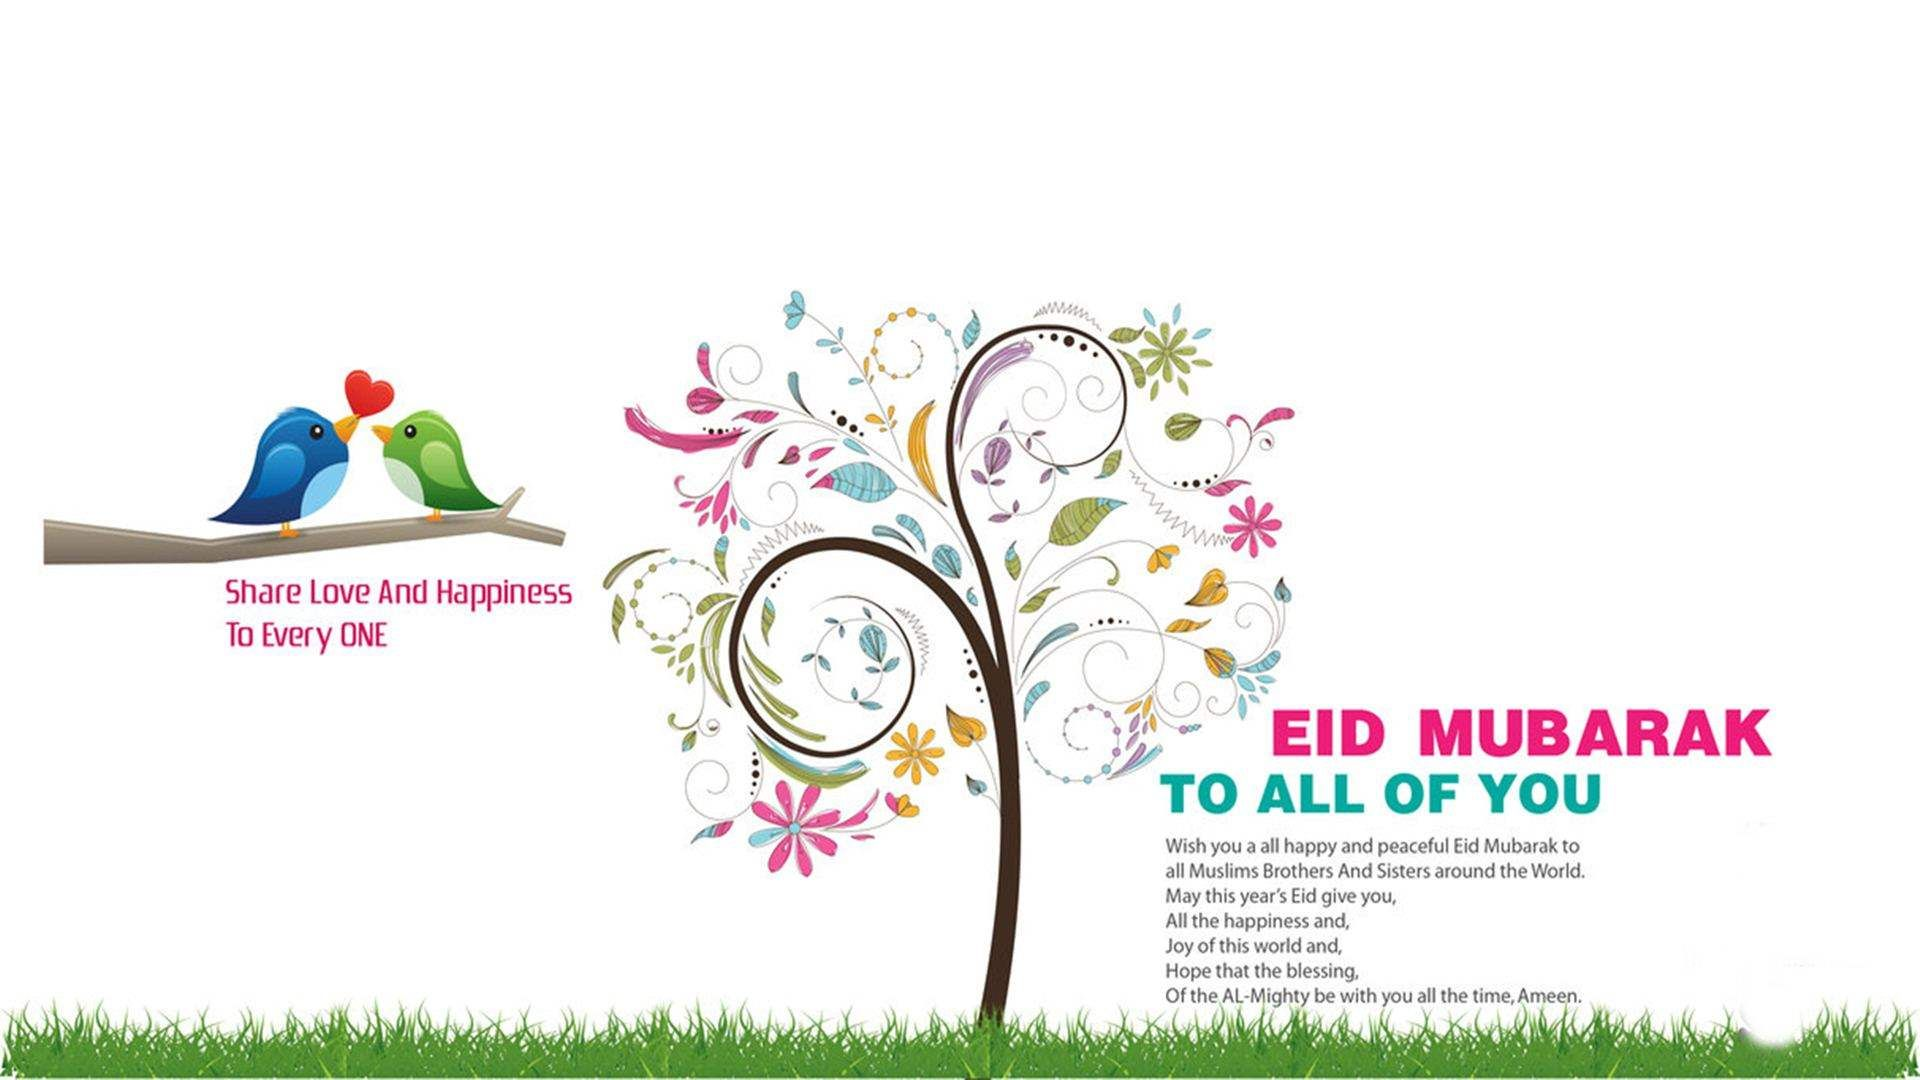 Download eid mubarak 2015 greeting cards and messages pinterest desertroseeid mubarak 2015 greeting cards m4hsunfo